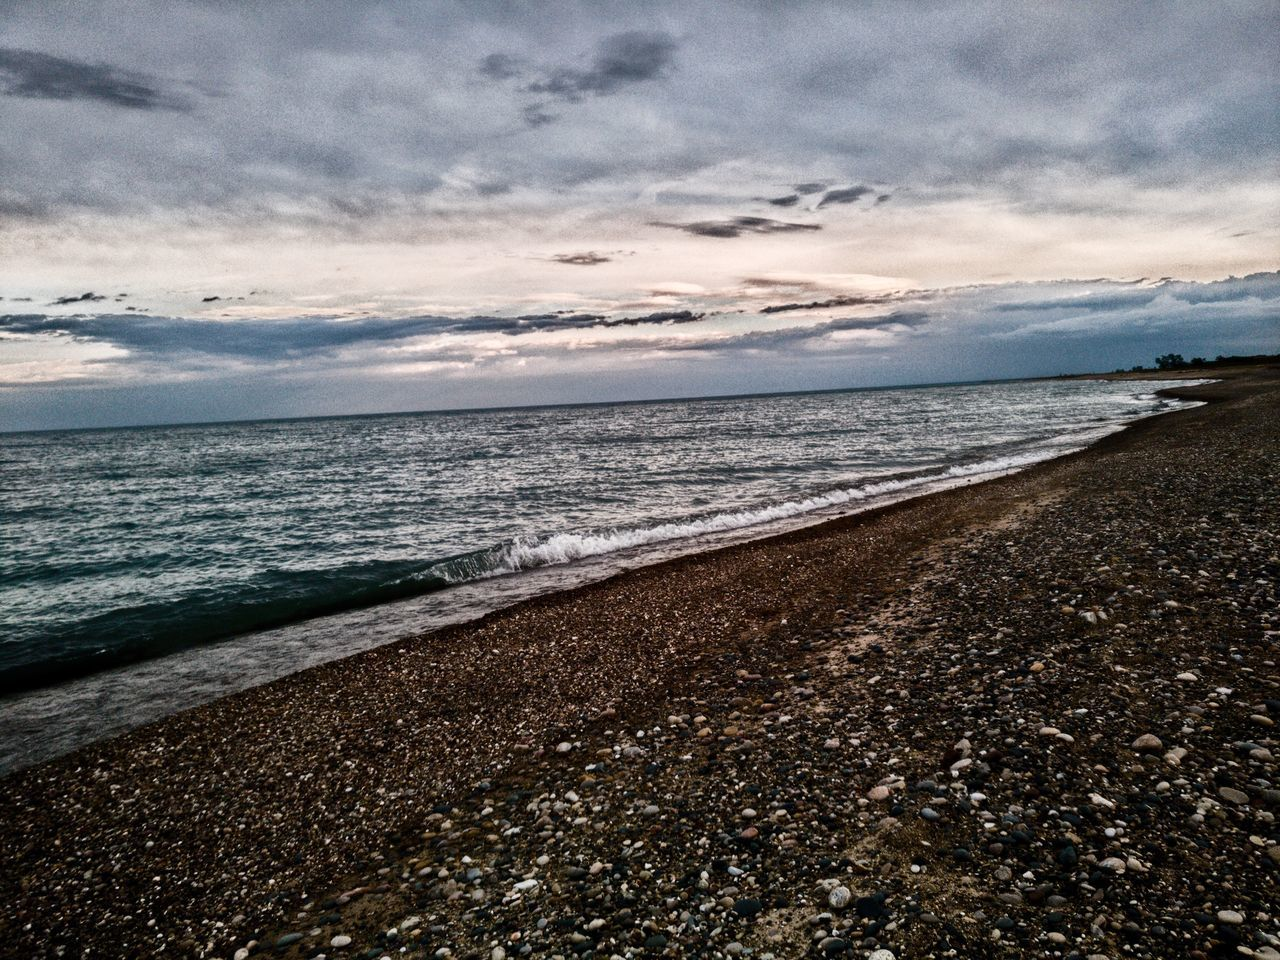 sea, beach, sky, water, horizon over water, cloud - sky, nature, beauty in nature, scenics, tranquility, tranquil scene, no people, sunset, sand, outdoors, wave, day